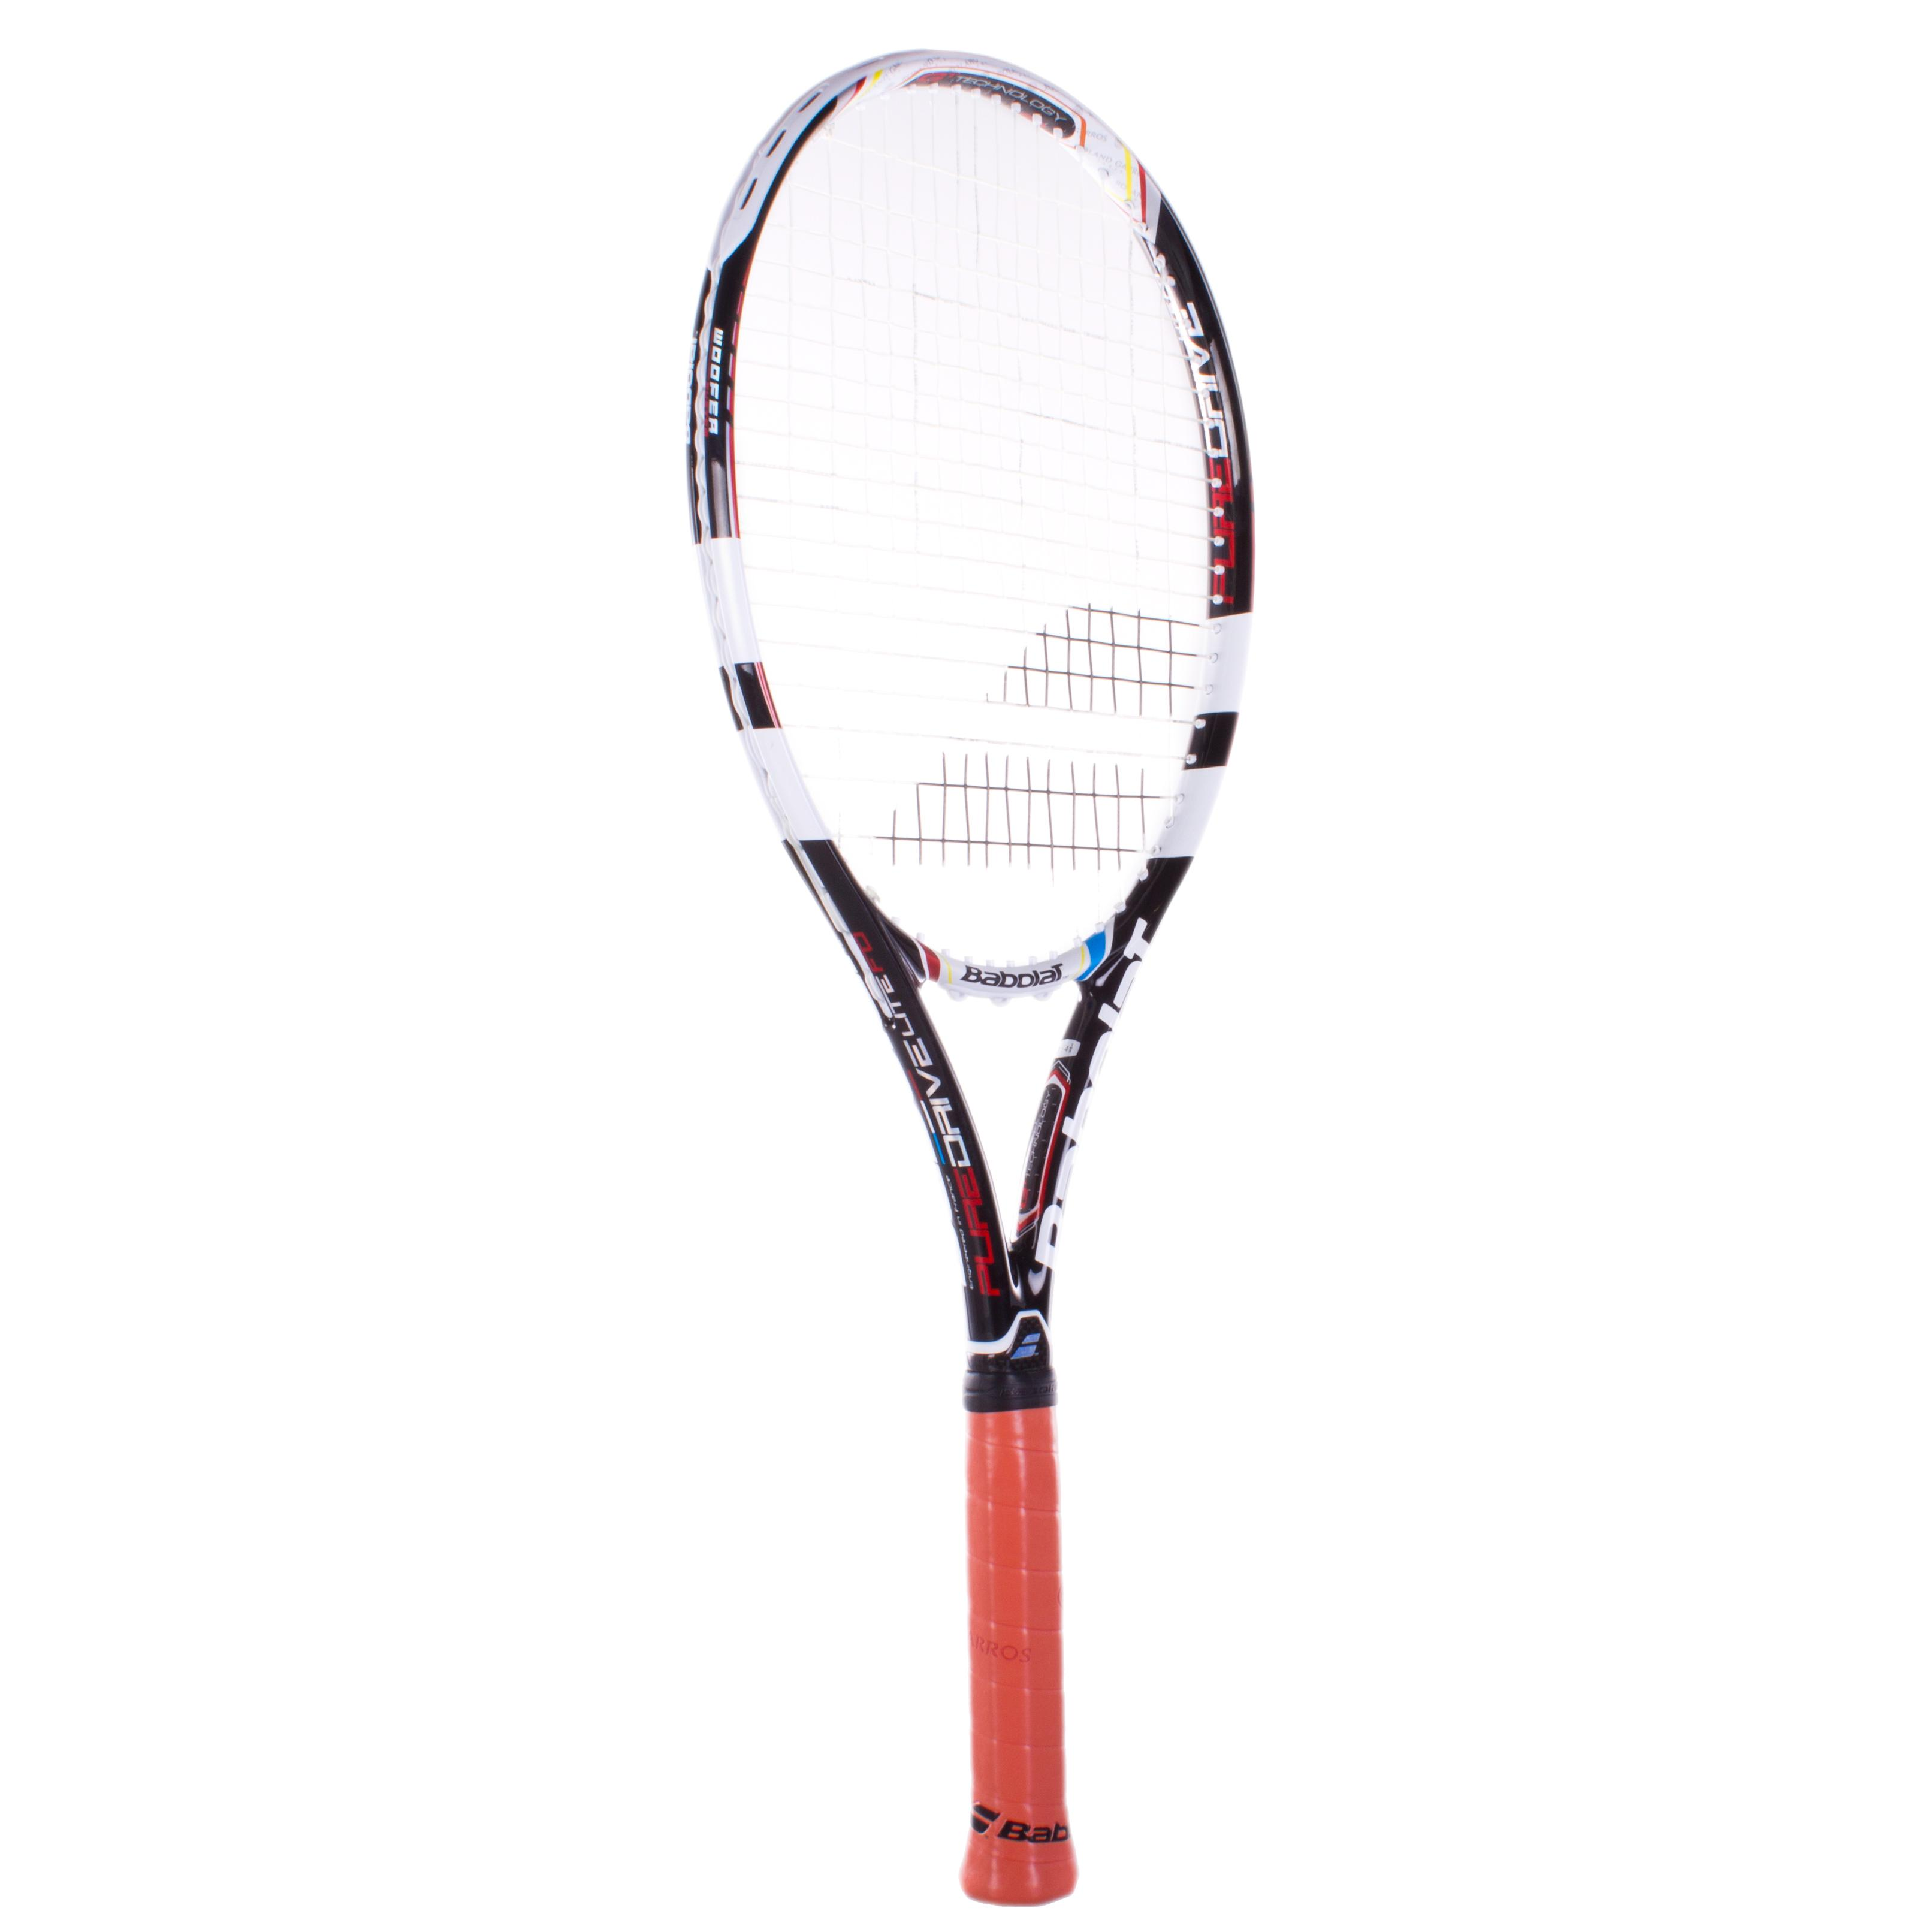 Tennis plaza tennis racquets at tennis plaza your source for tennis rackets tennis shoes - Babolat pure drive lite tennis racquet ...